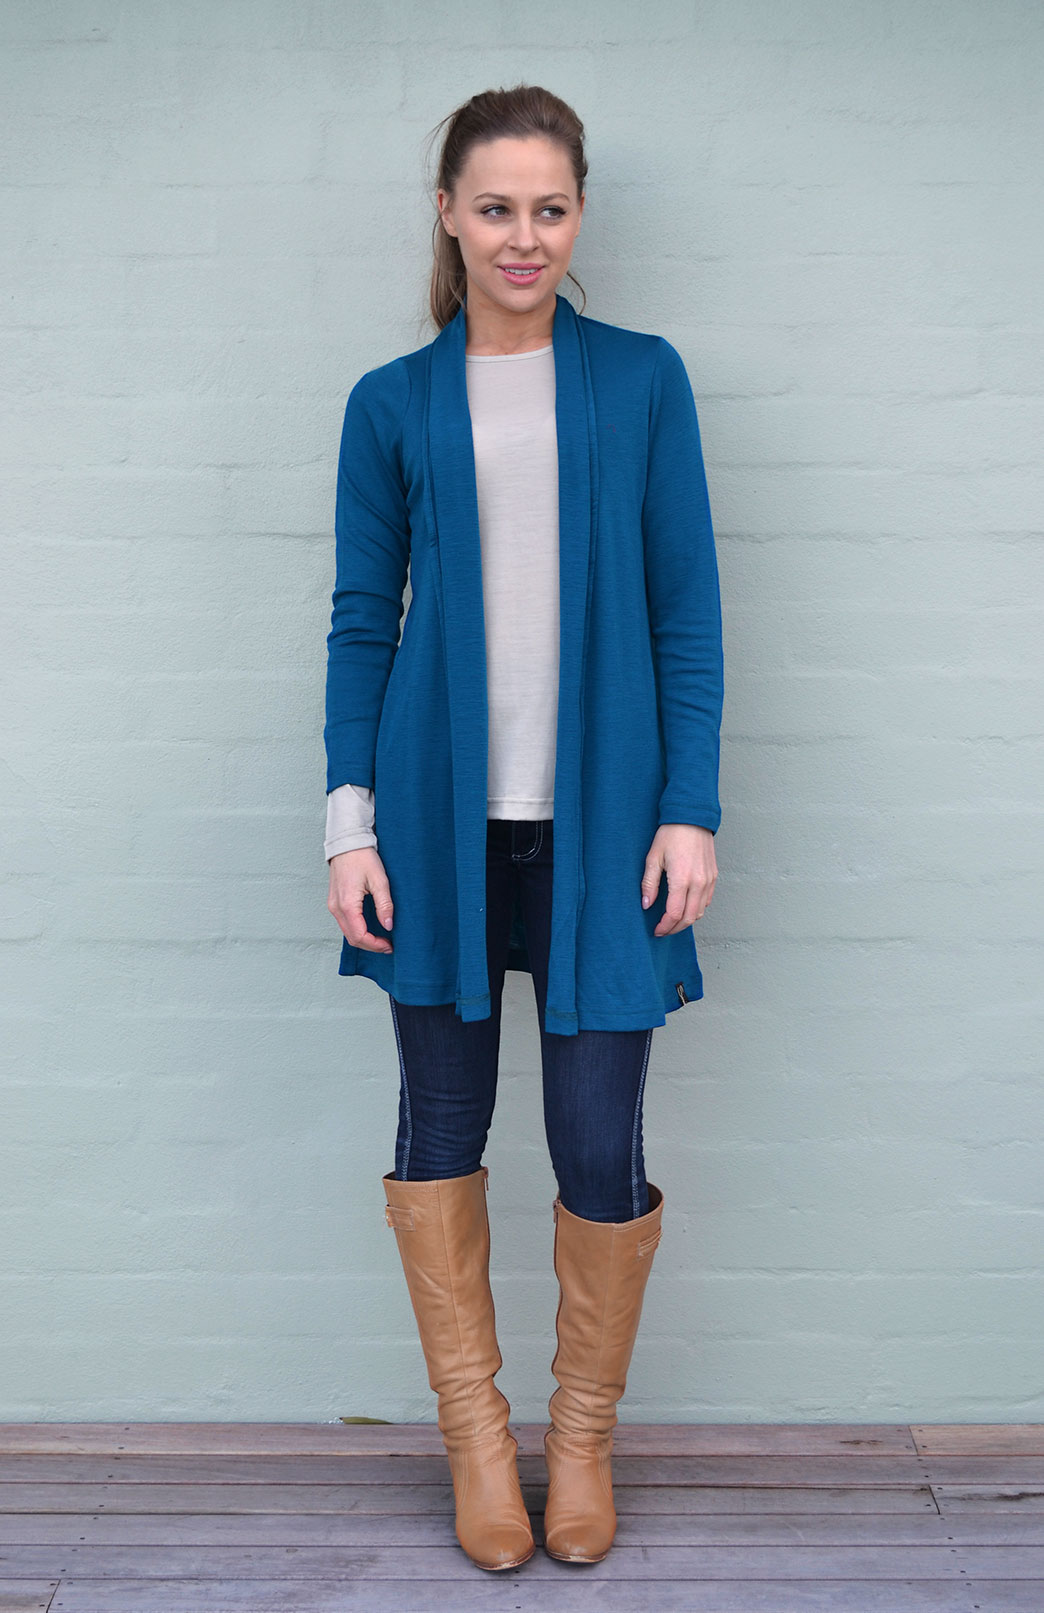 Drape Cardigan - Heavyweight - Women's Teal Wool Drape Cardigan with no buttons or fastenings - Smitten Merino Tasmania Australia